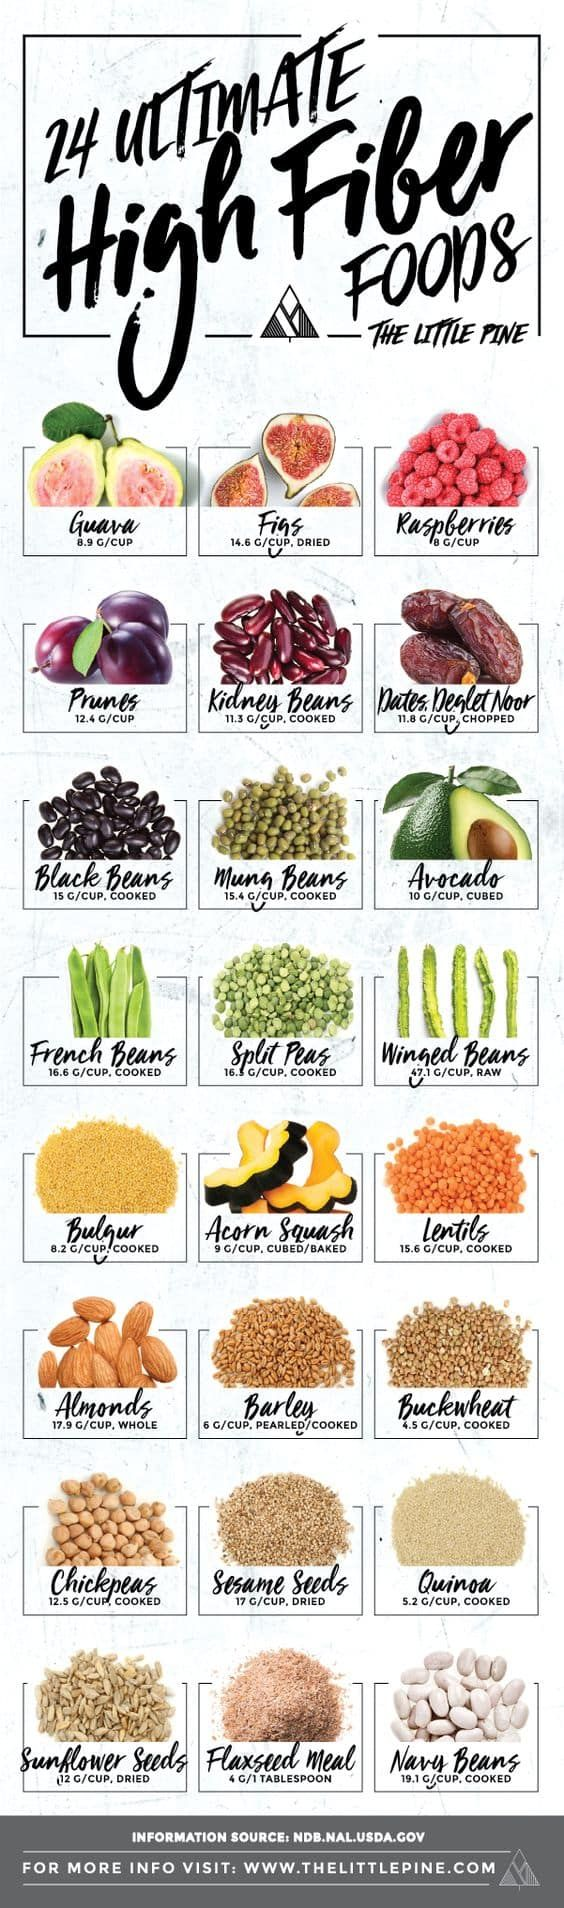 These Highest Fiber Food Charts will help you learn how to make sensible swaps and lose weight and look great. Grab yours now.